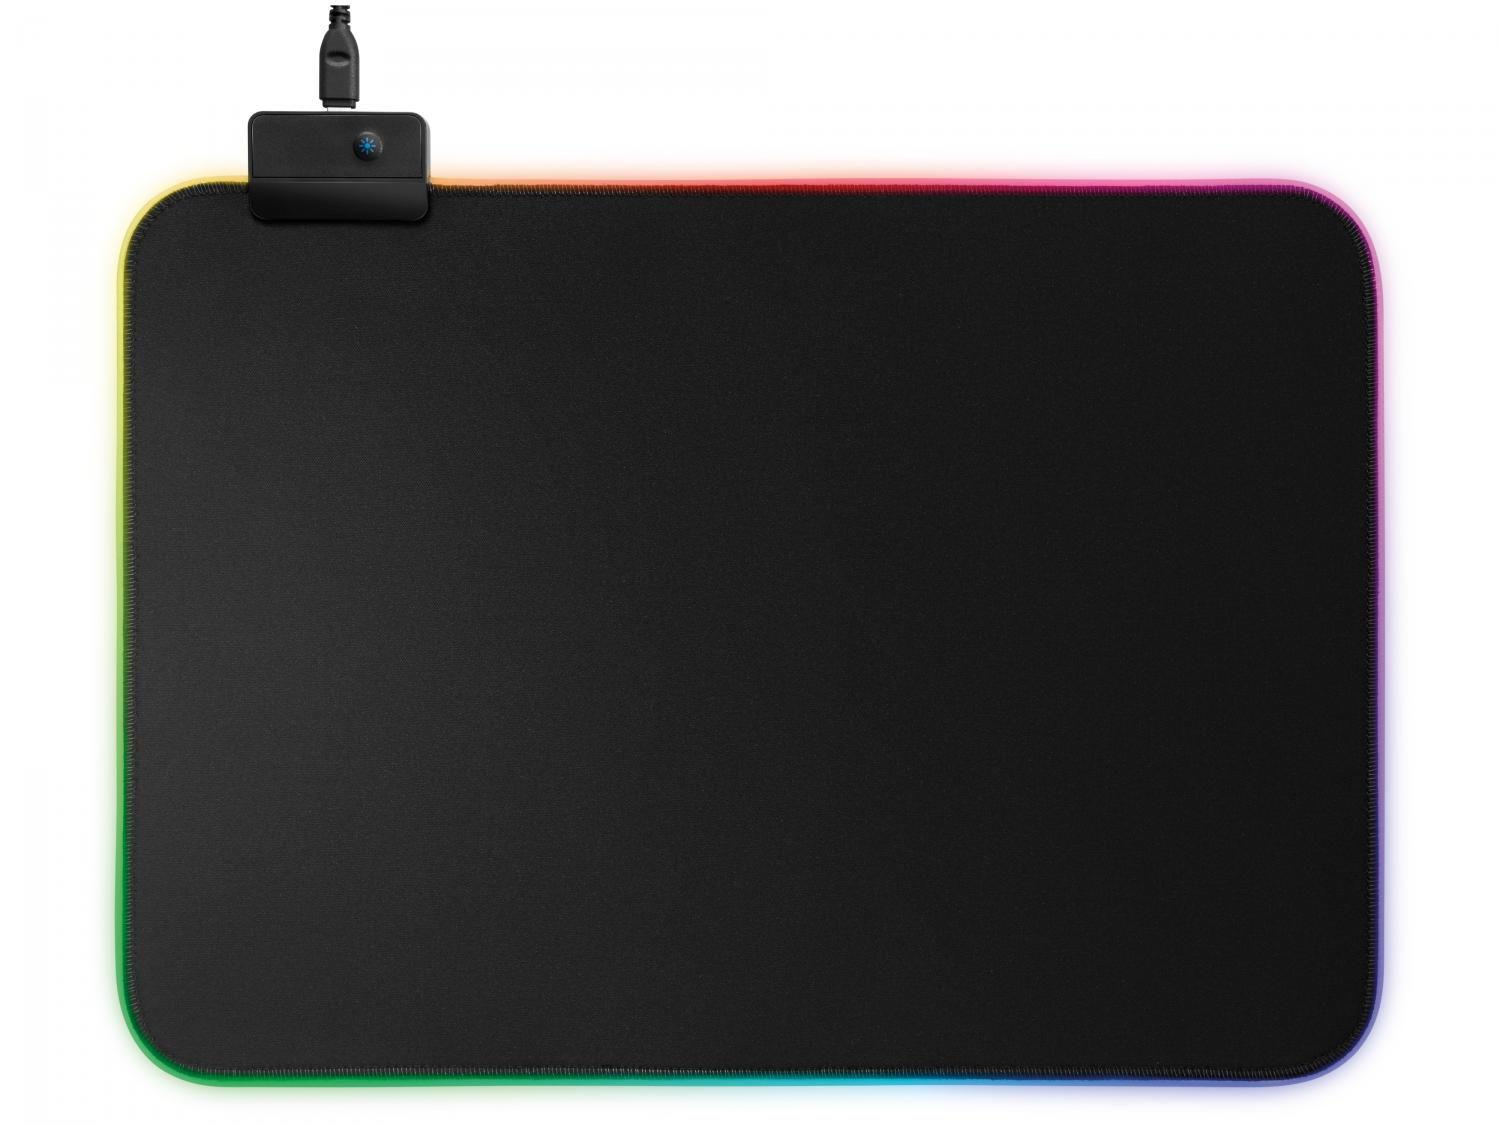 Mouse Pad Gamer RGB XZONE - GMP-01